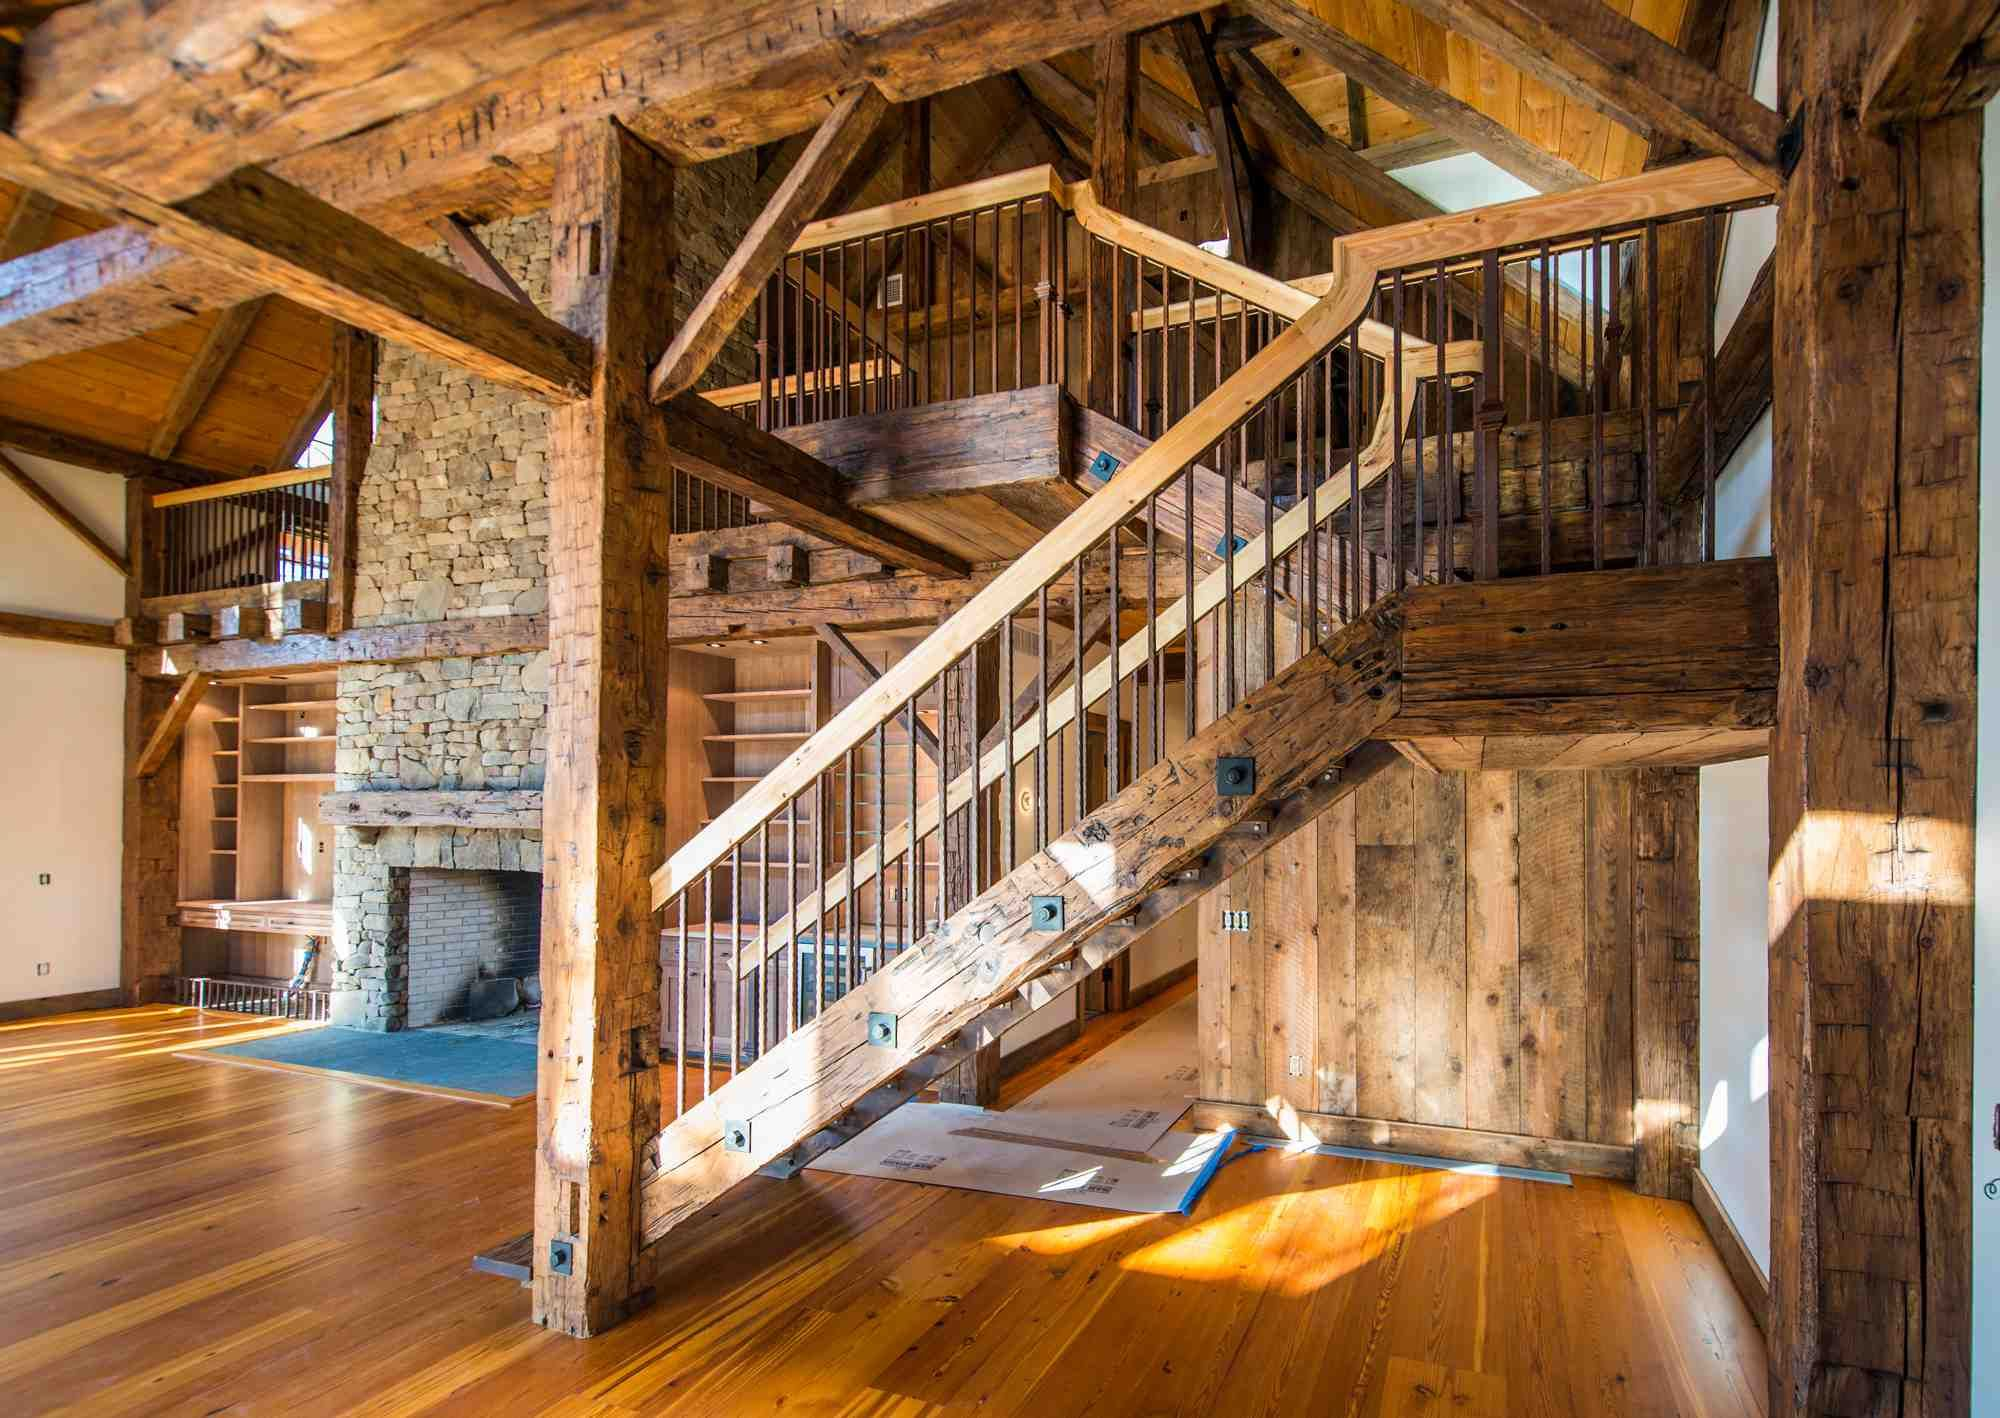 Inspiring Ideas Barn Conversion Homes In French Barns That Have